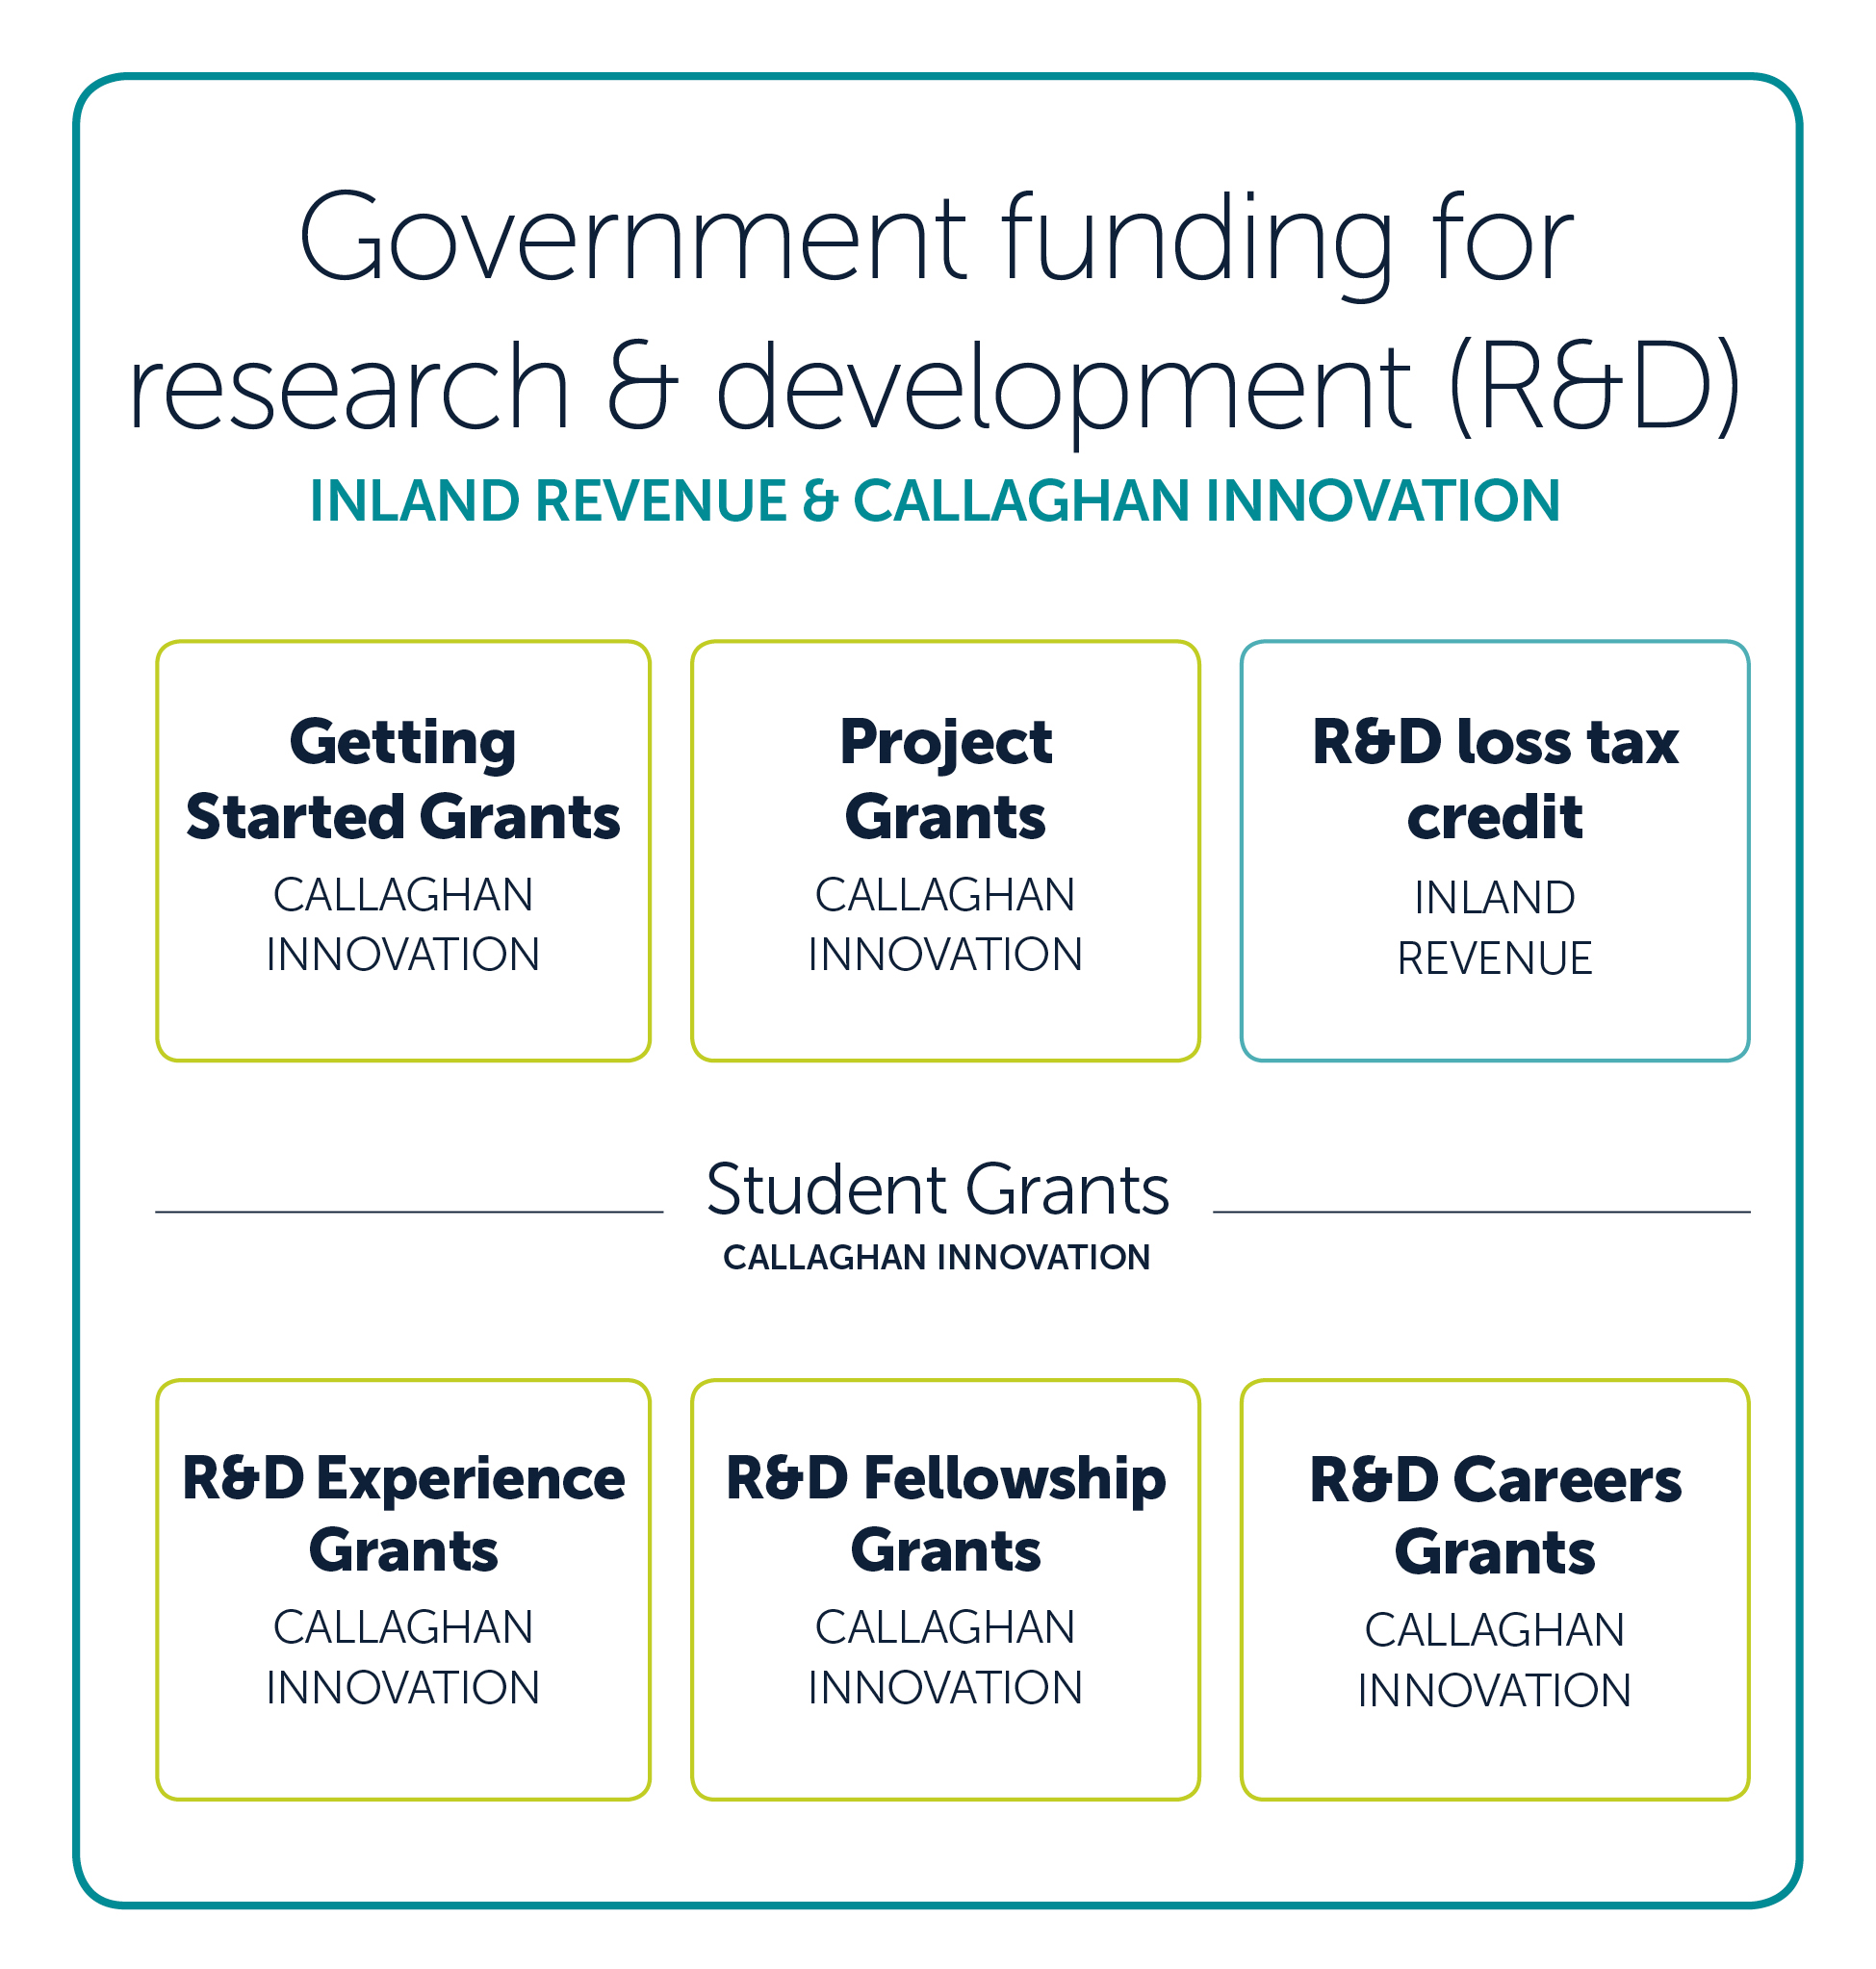 Government funding for research & development (R&D)